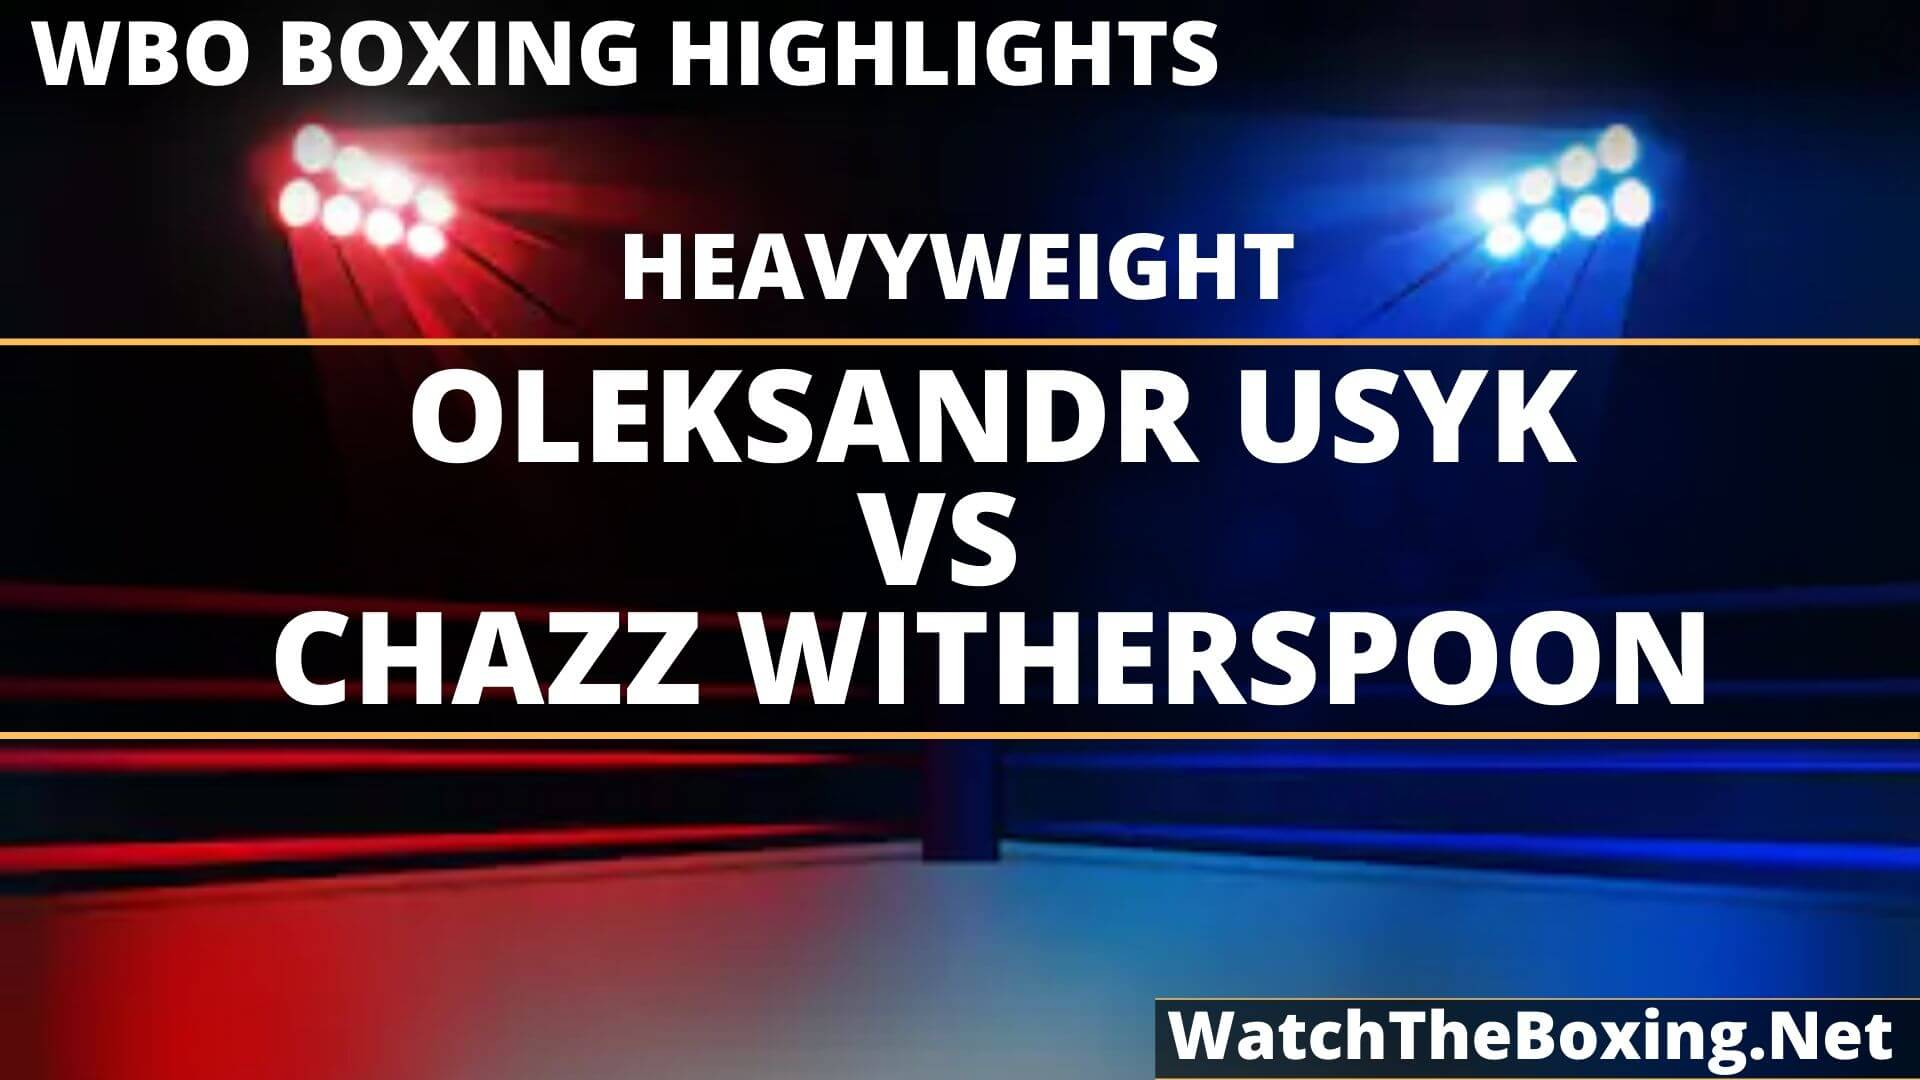 Oleksandr Usyk Vs Chazz Witherspoon Highlights 2019